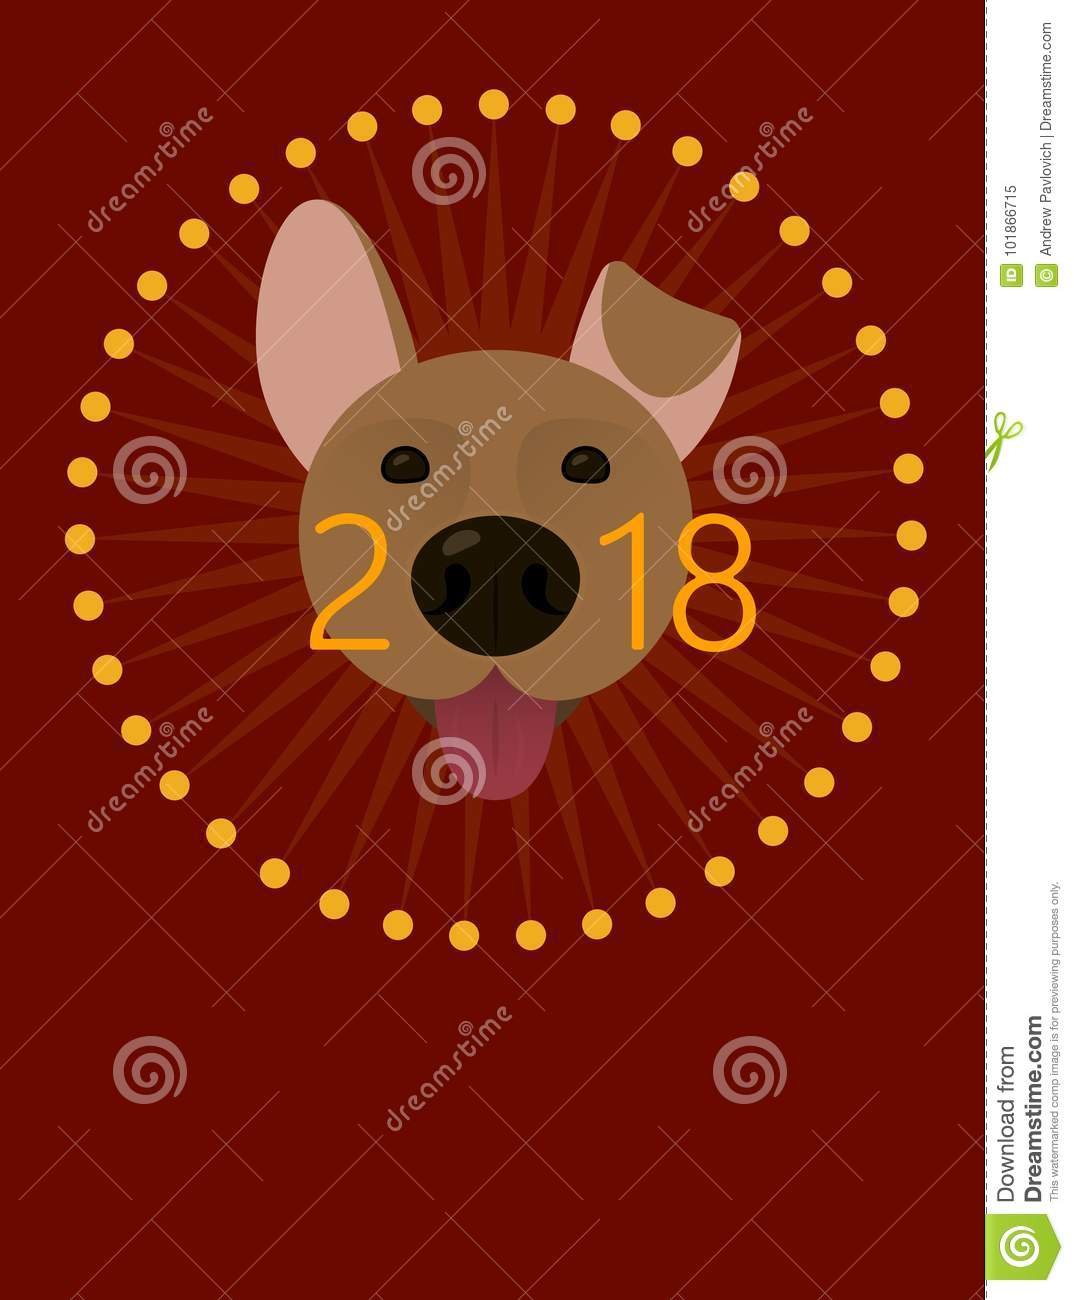 2018 happy new year greeting card poster celebration background with dog 2018 chinese new